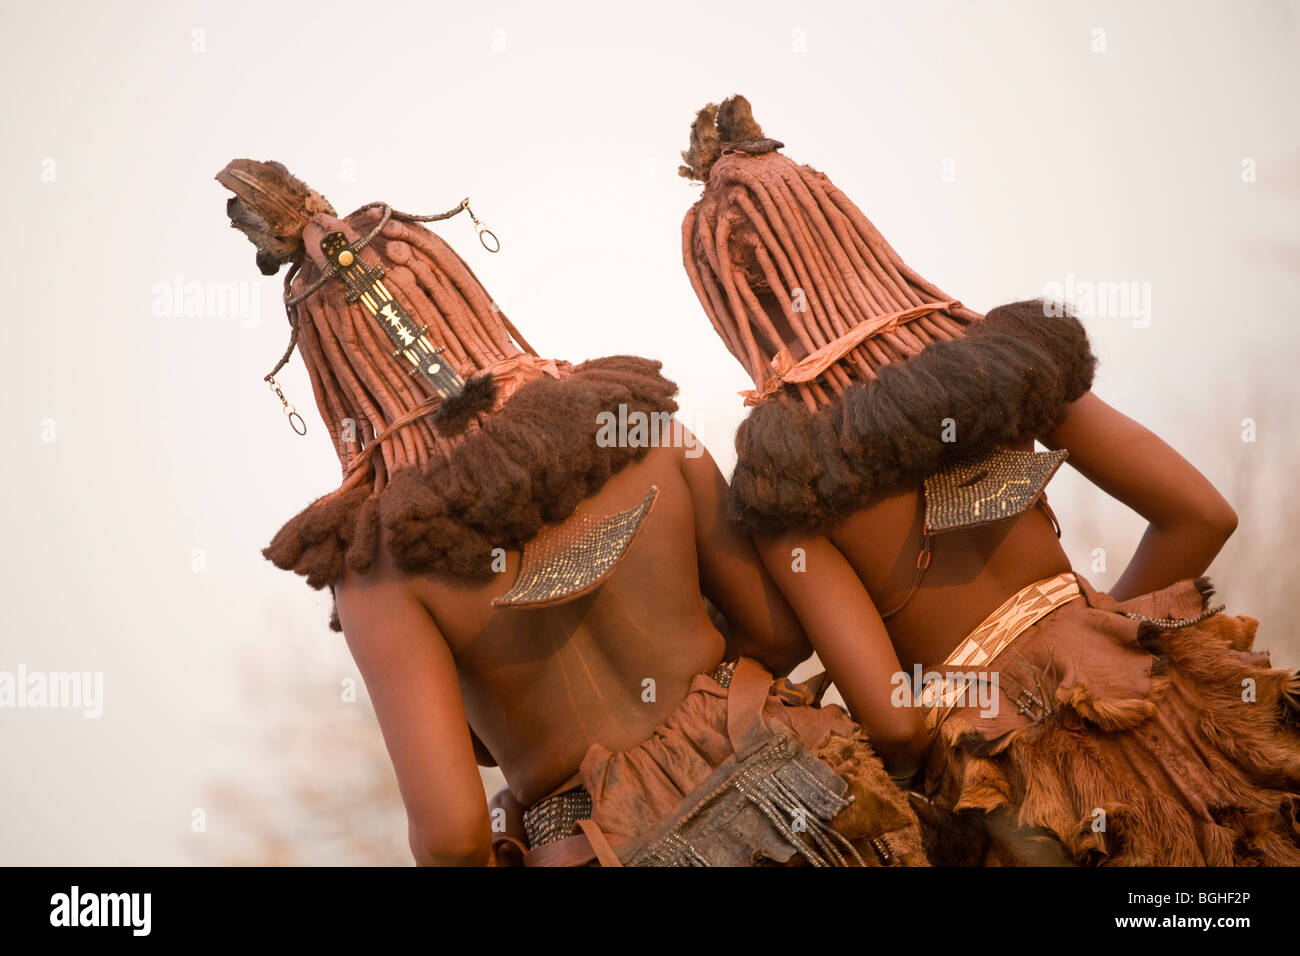 Young girls of the Himba tribe, Opuwo, Namibia - Stock Image